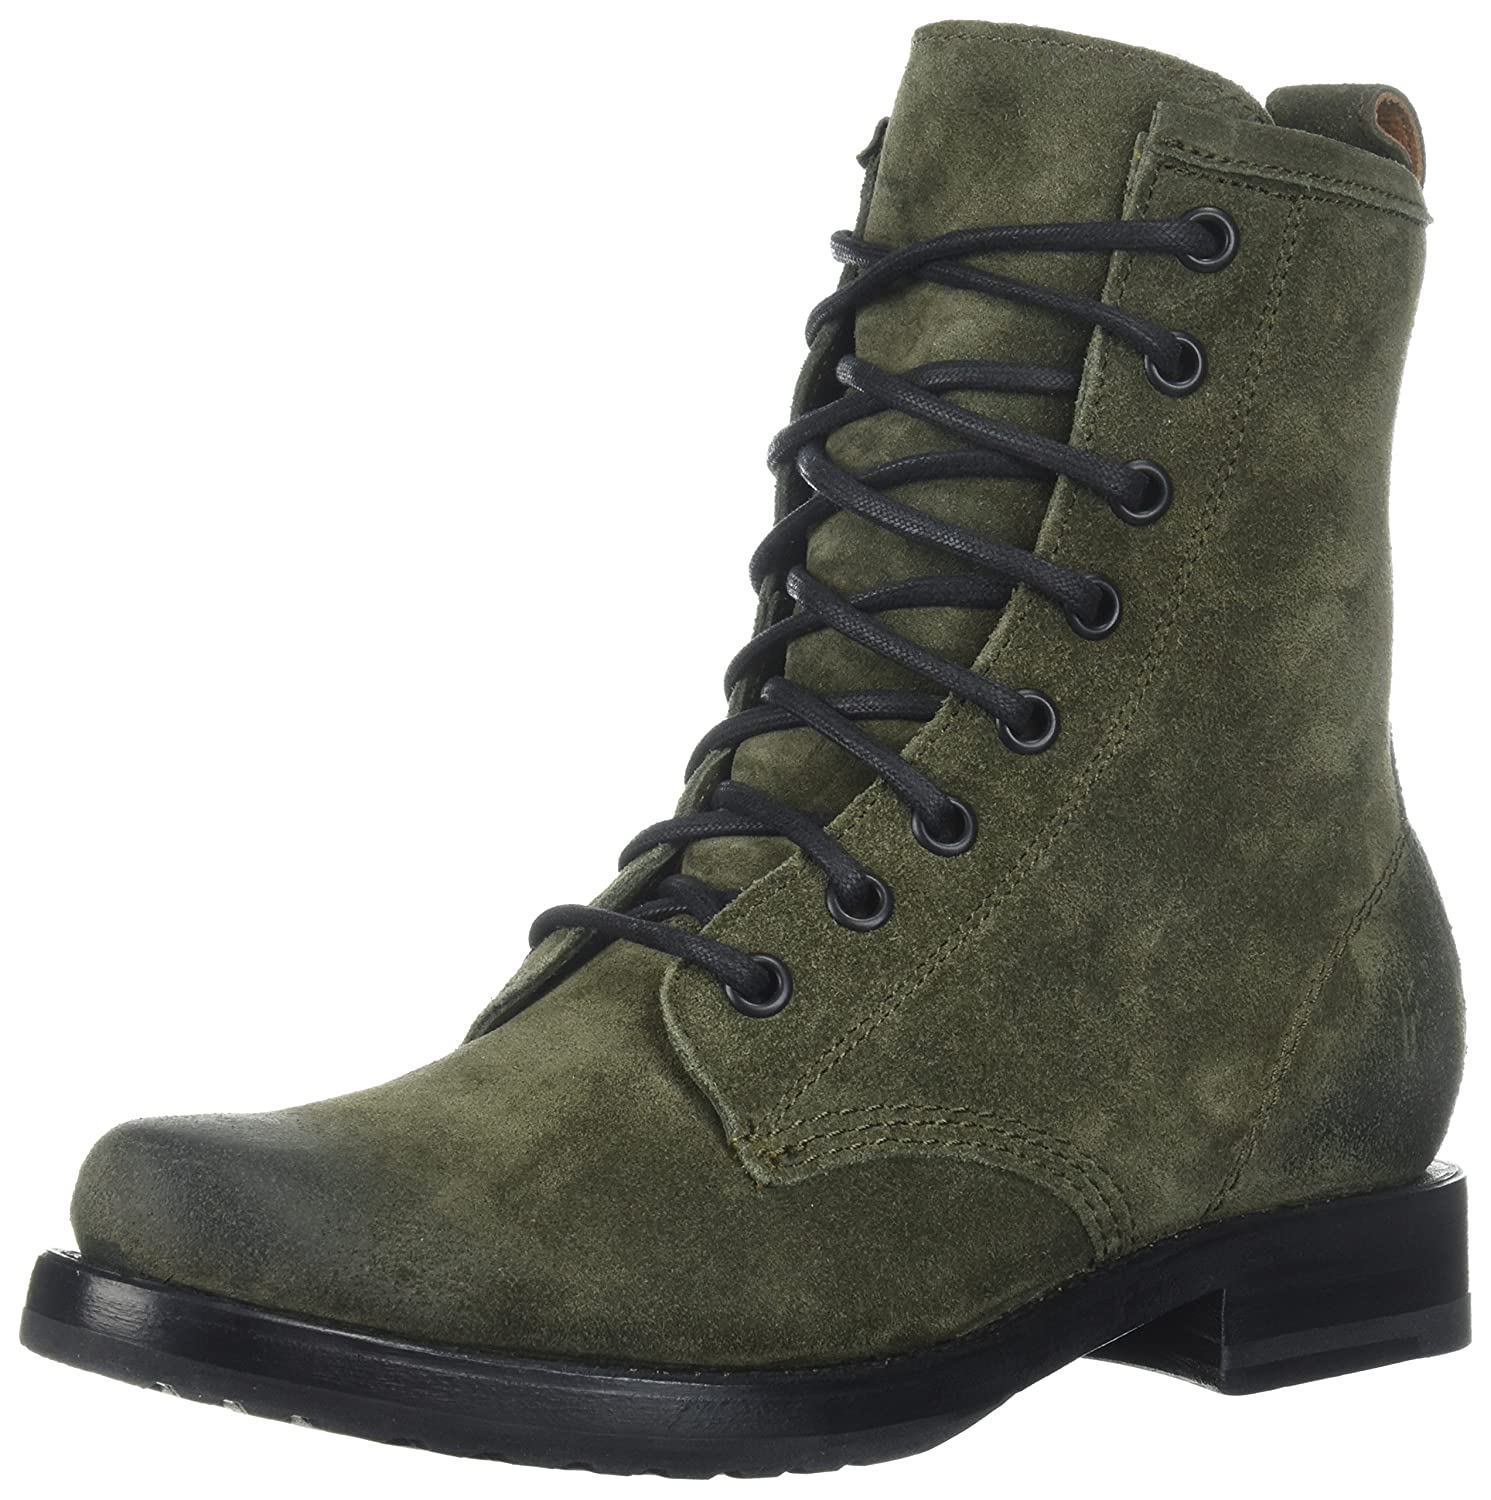 FRYE Women's Veronica Combat Boot B01N9O115F 7.5 B(M) US|Forest Soft Oiled Suede